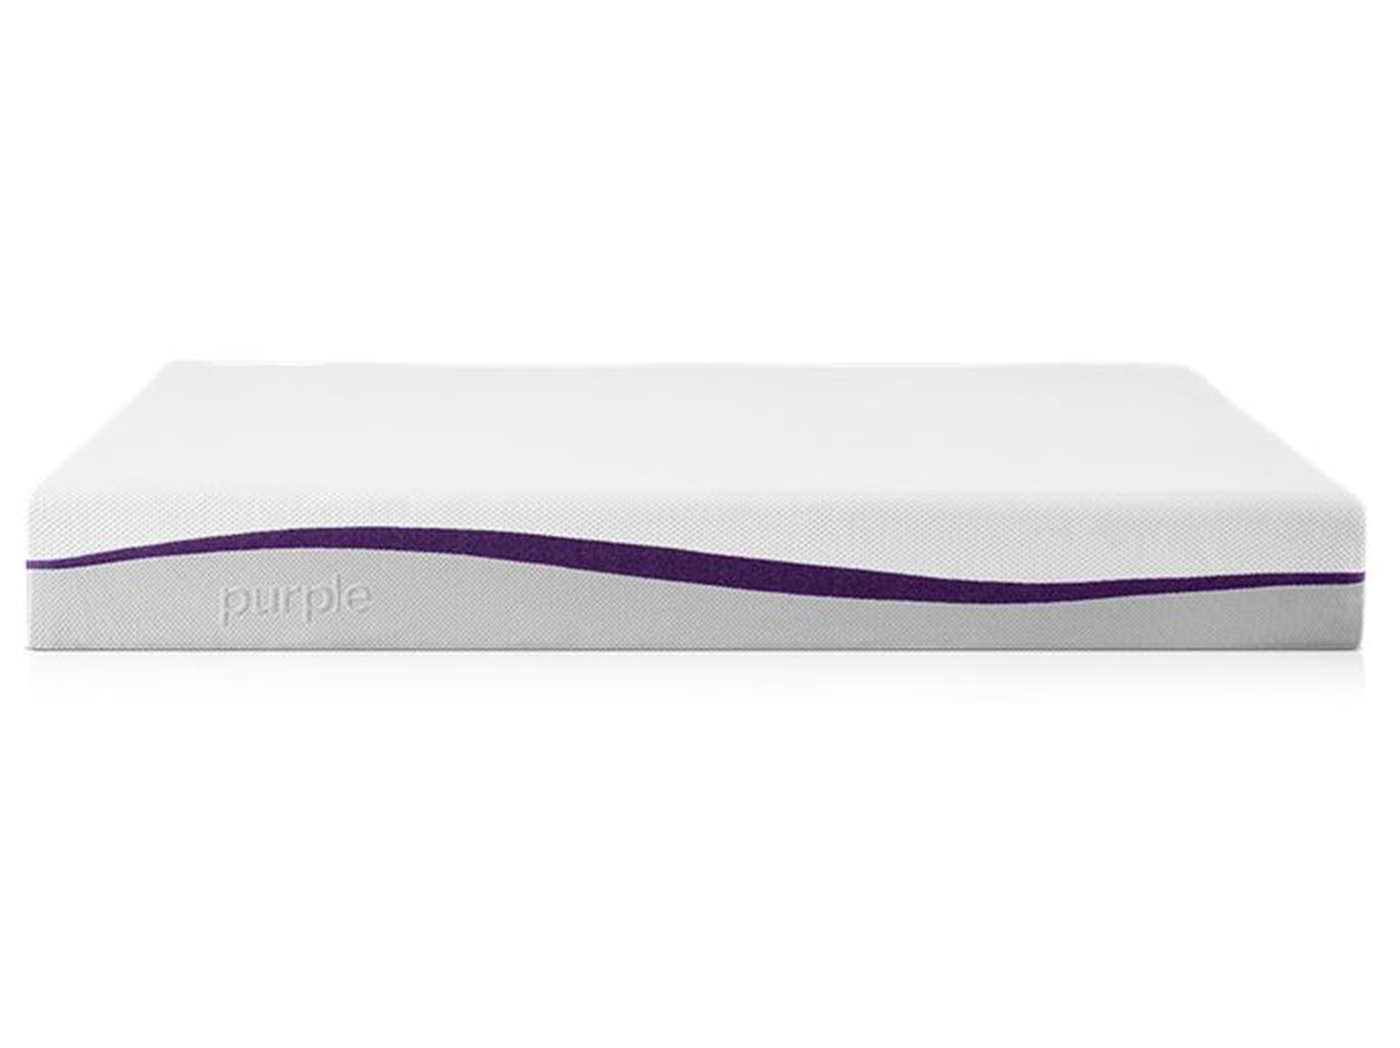 The Purple Twin XL Mattress